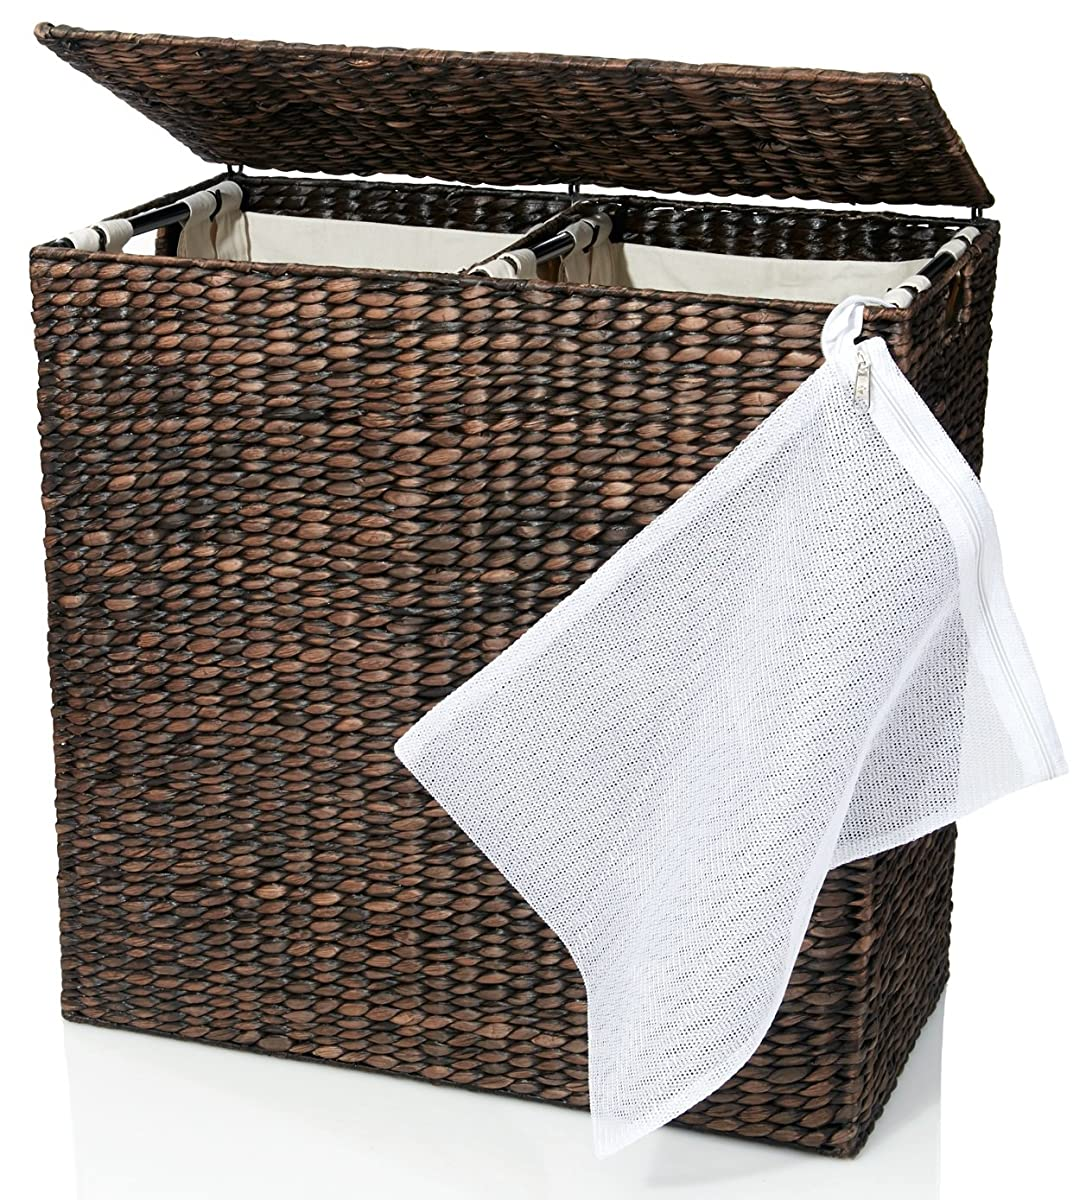 Designer Laundry Hamper Designer Wicker Laundry Hamper With Divided Interior And